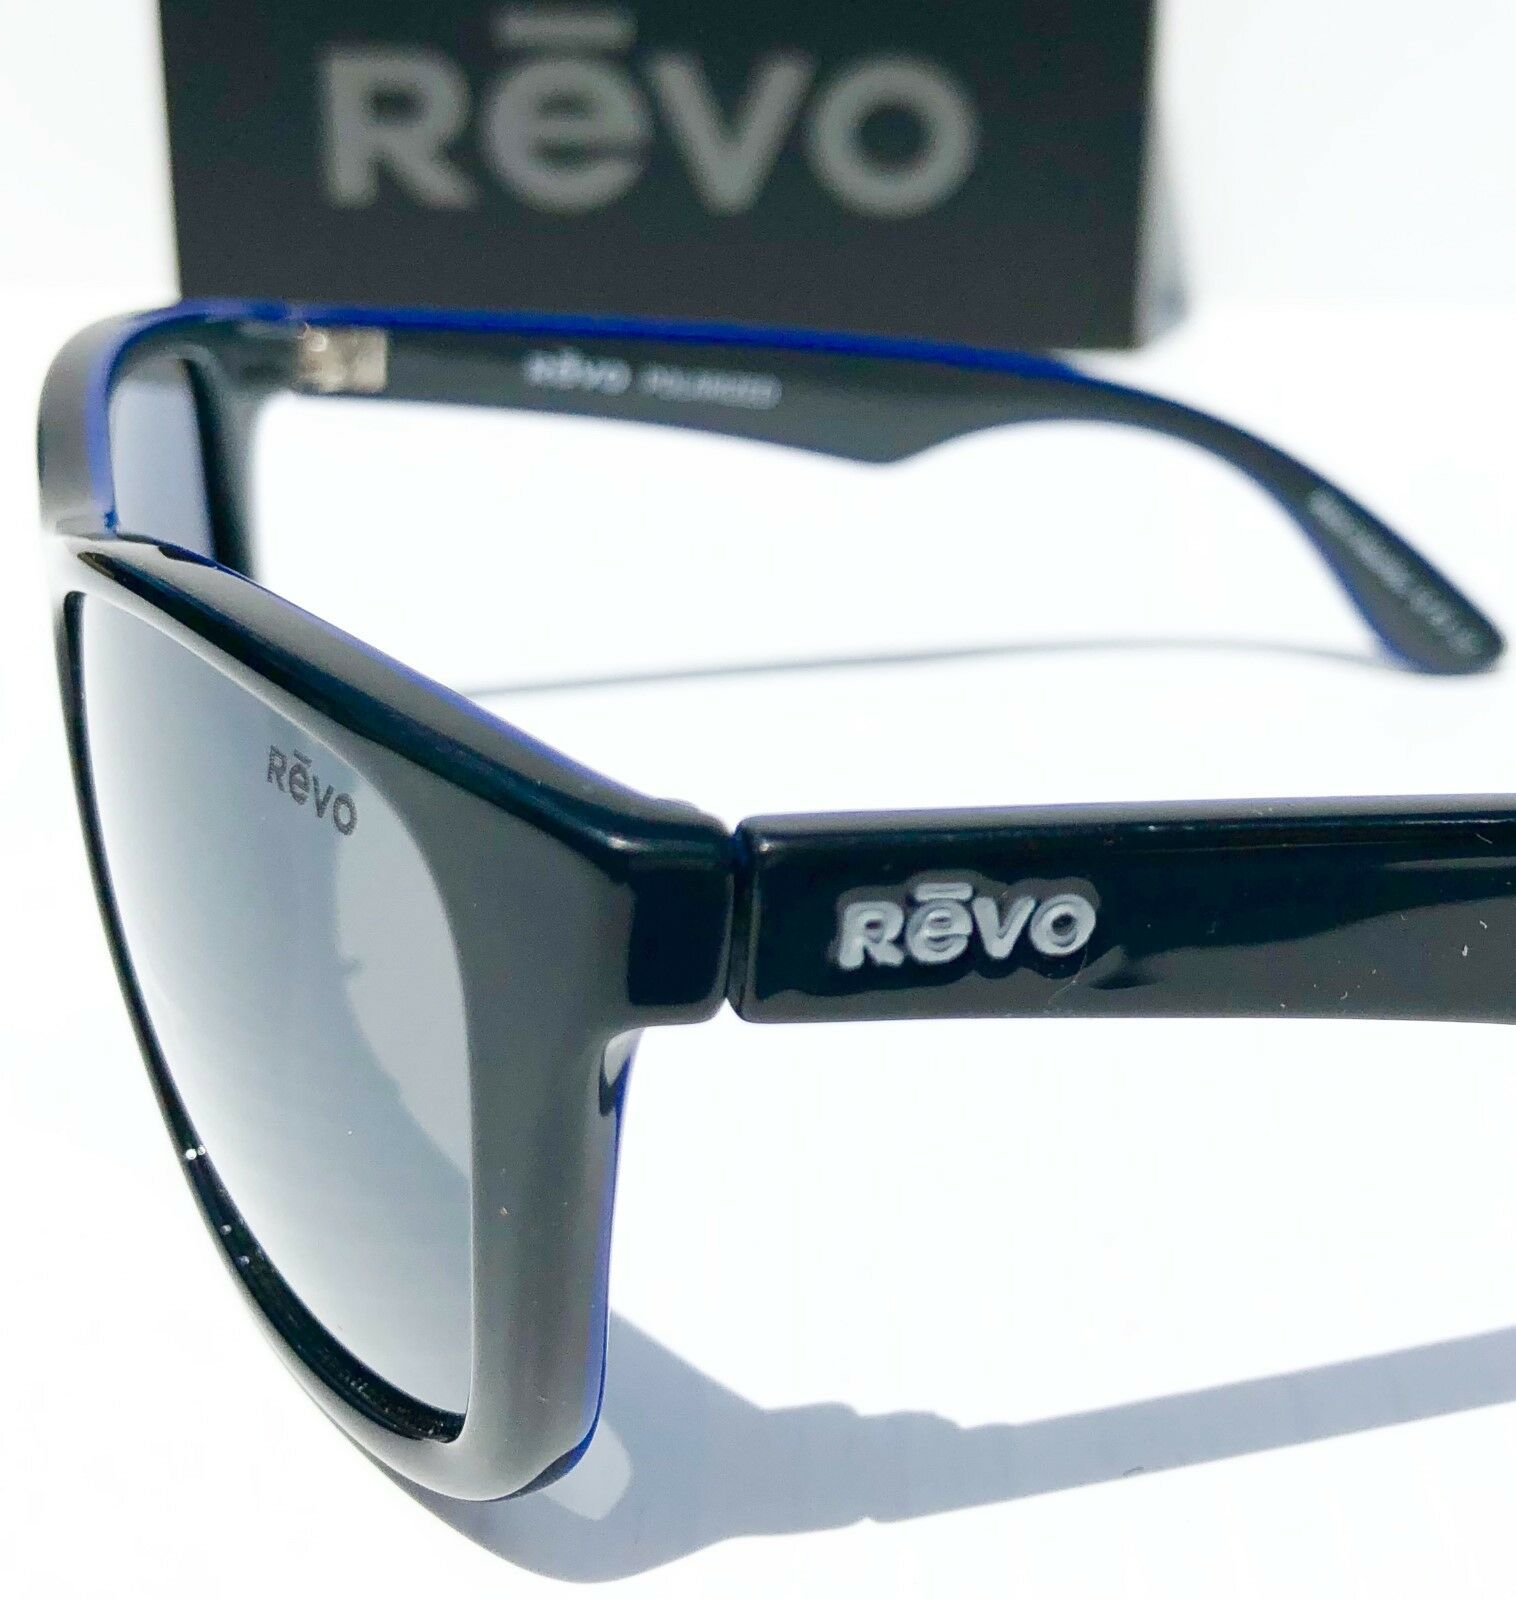 23541bff2e REVO Otis Black Blue Frame W Polarized Gray Lens Sunglass 1001 01 GY for  sale online